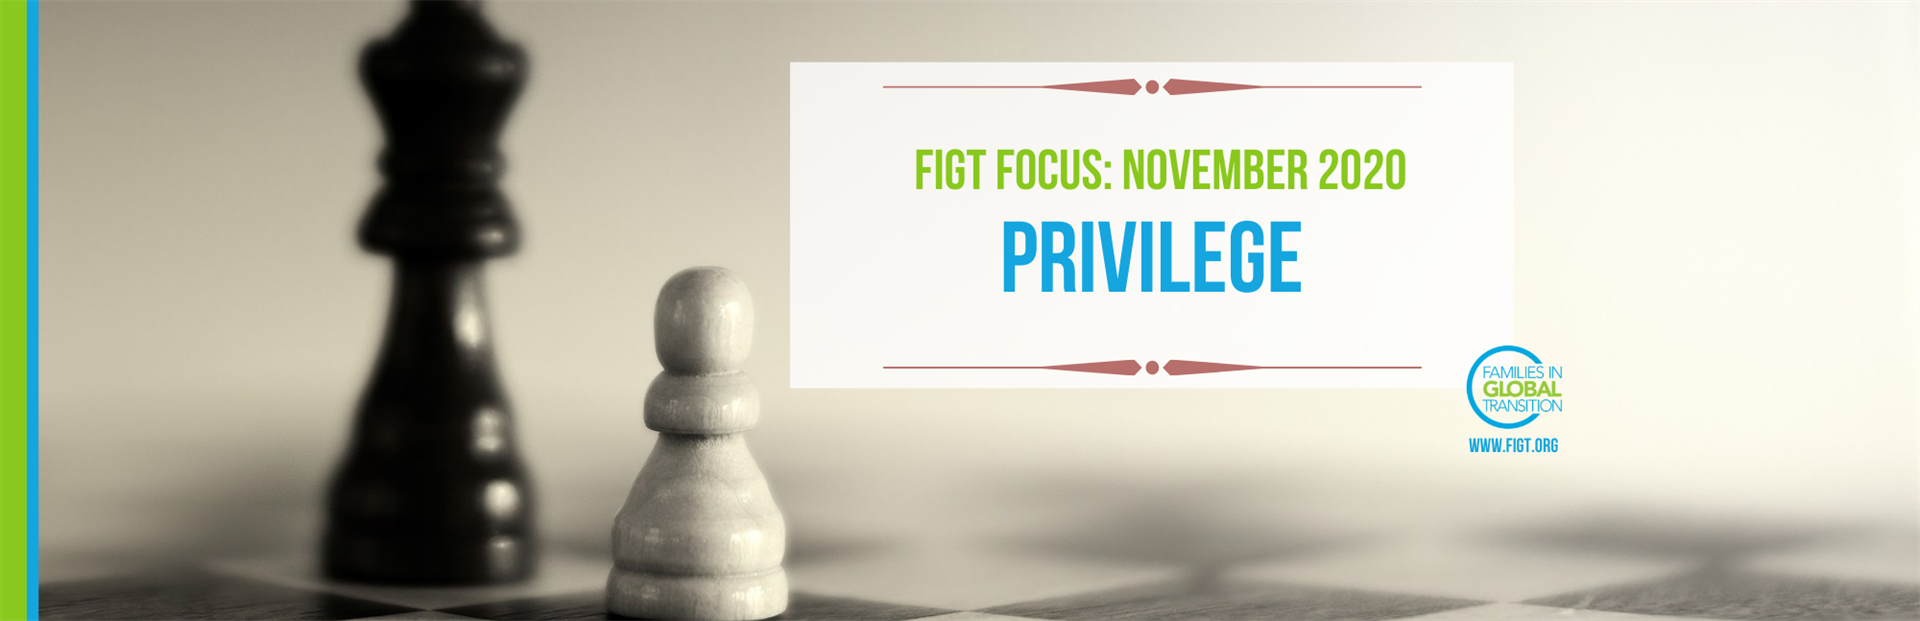 Blog title: FIGT Focus for Nov 2020 is Privilege